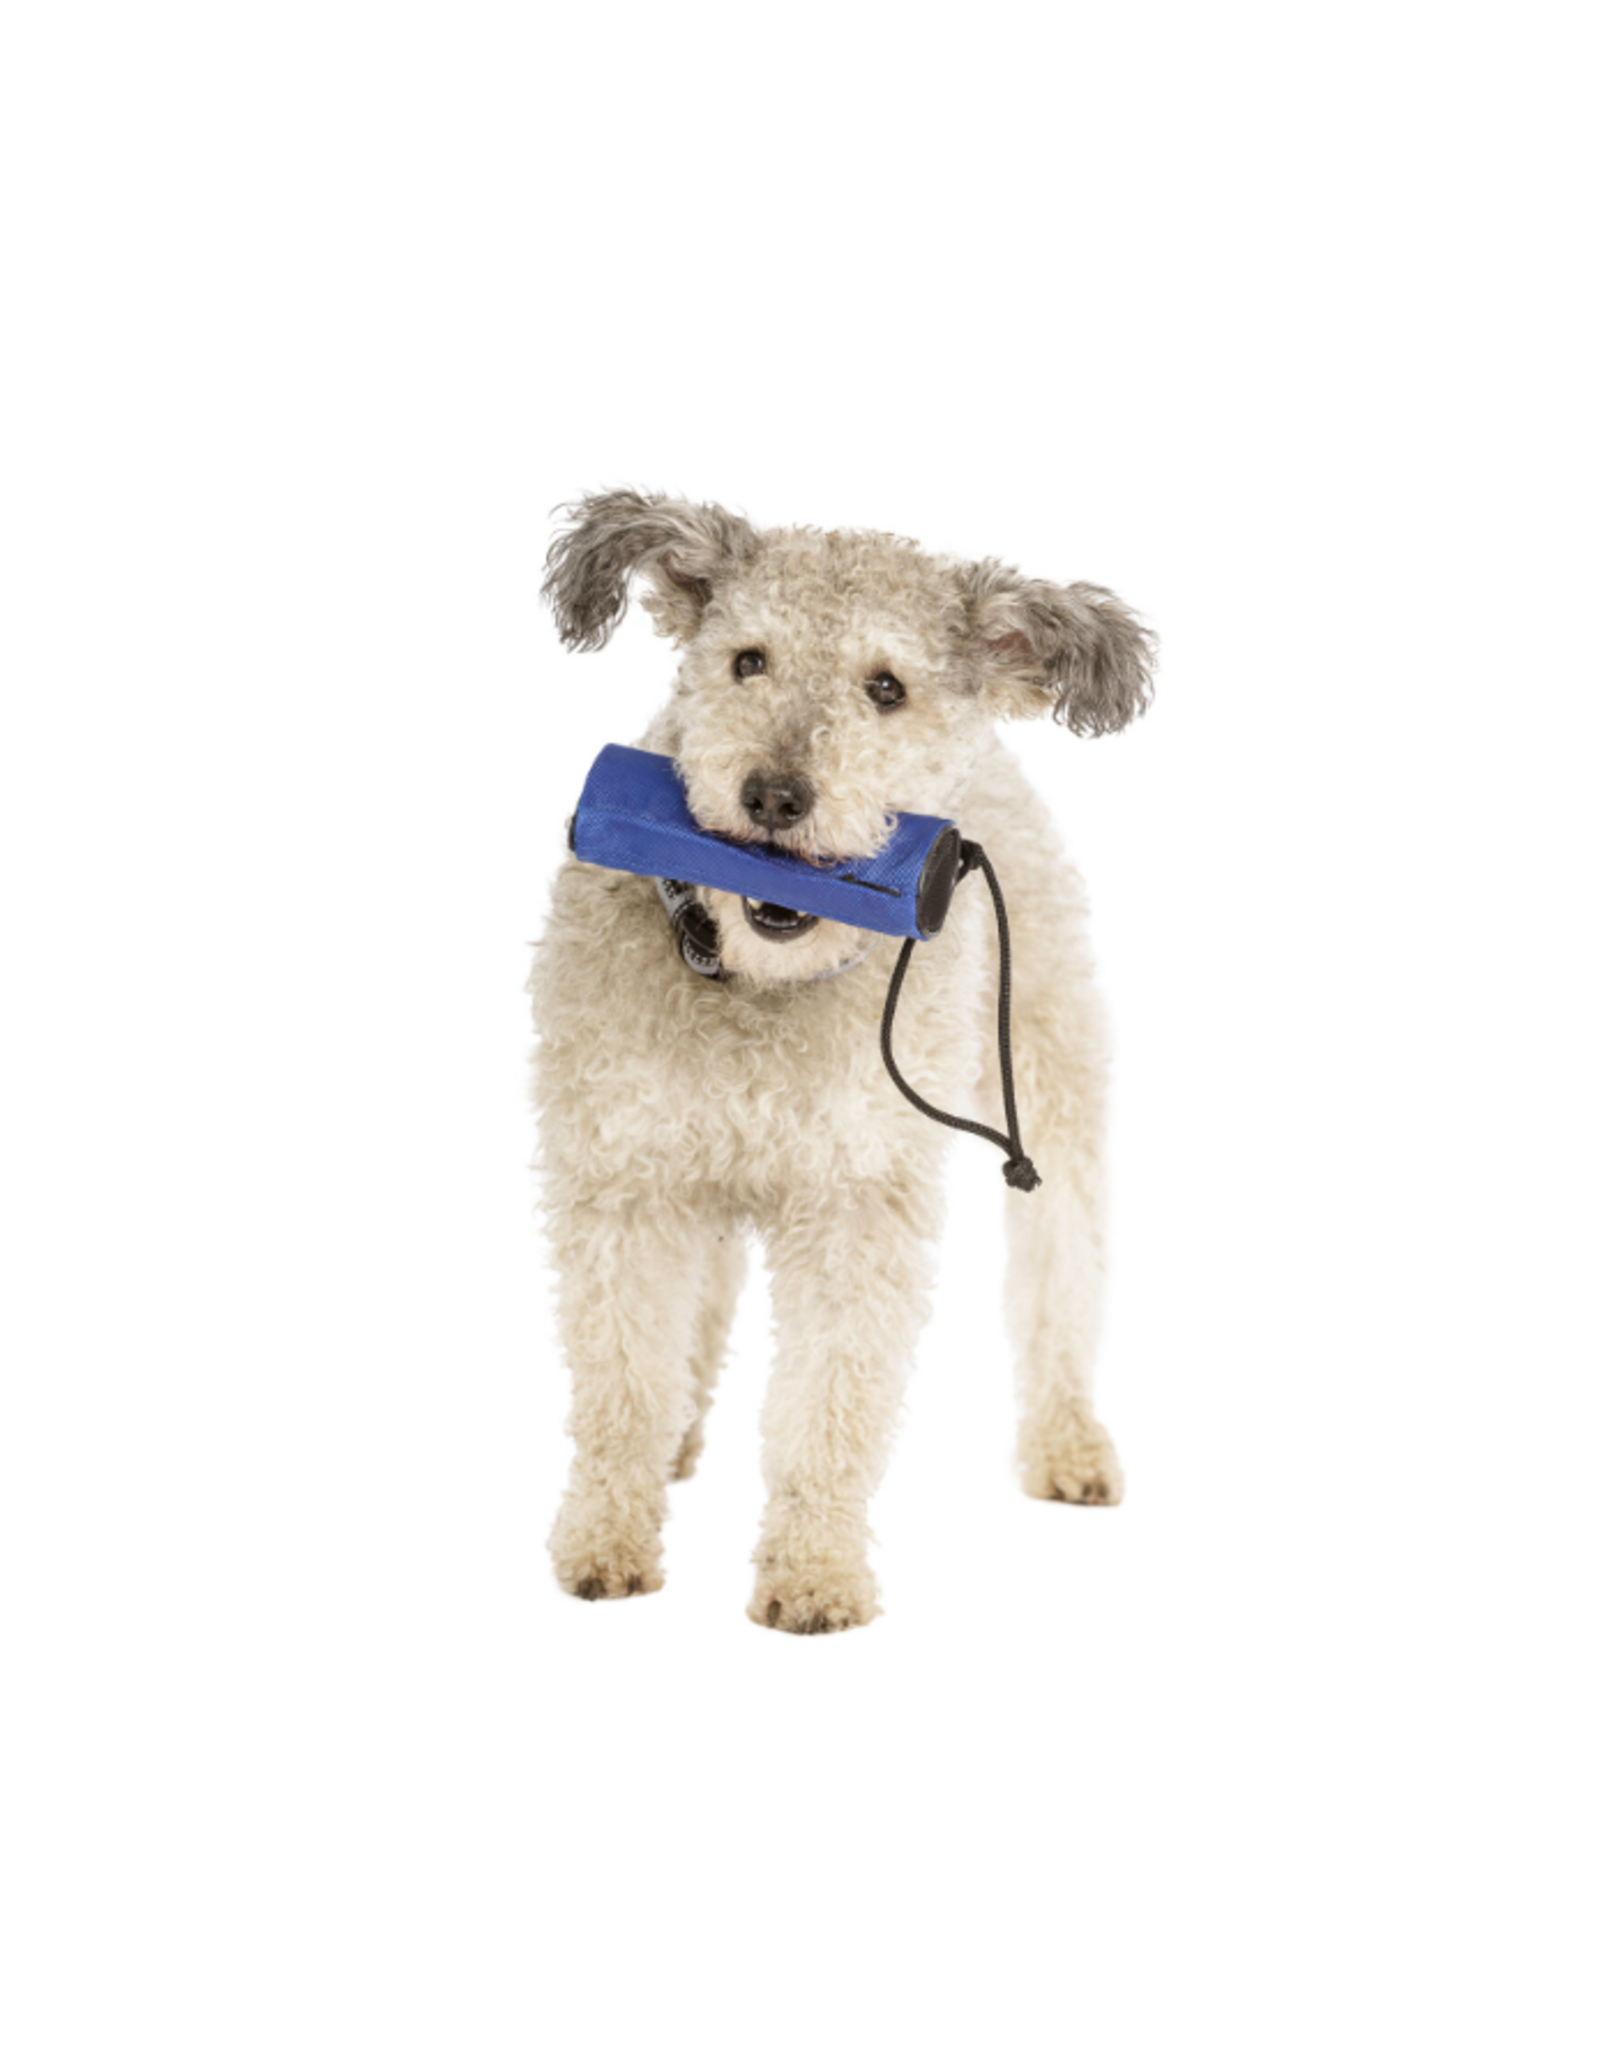 Company of Animals Dog Retriever Training Aid with Built in Treat Dispenser